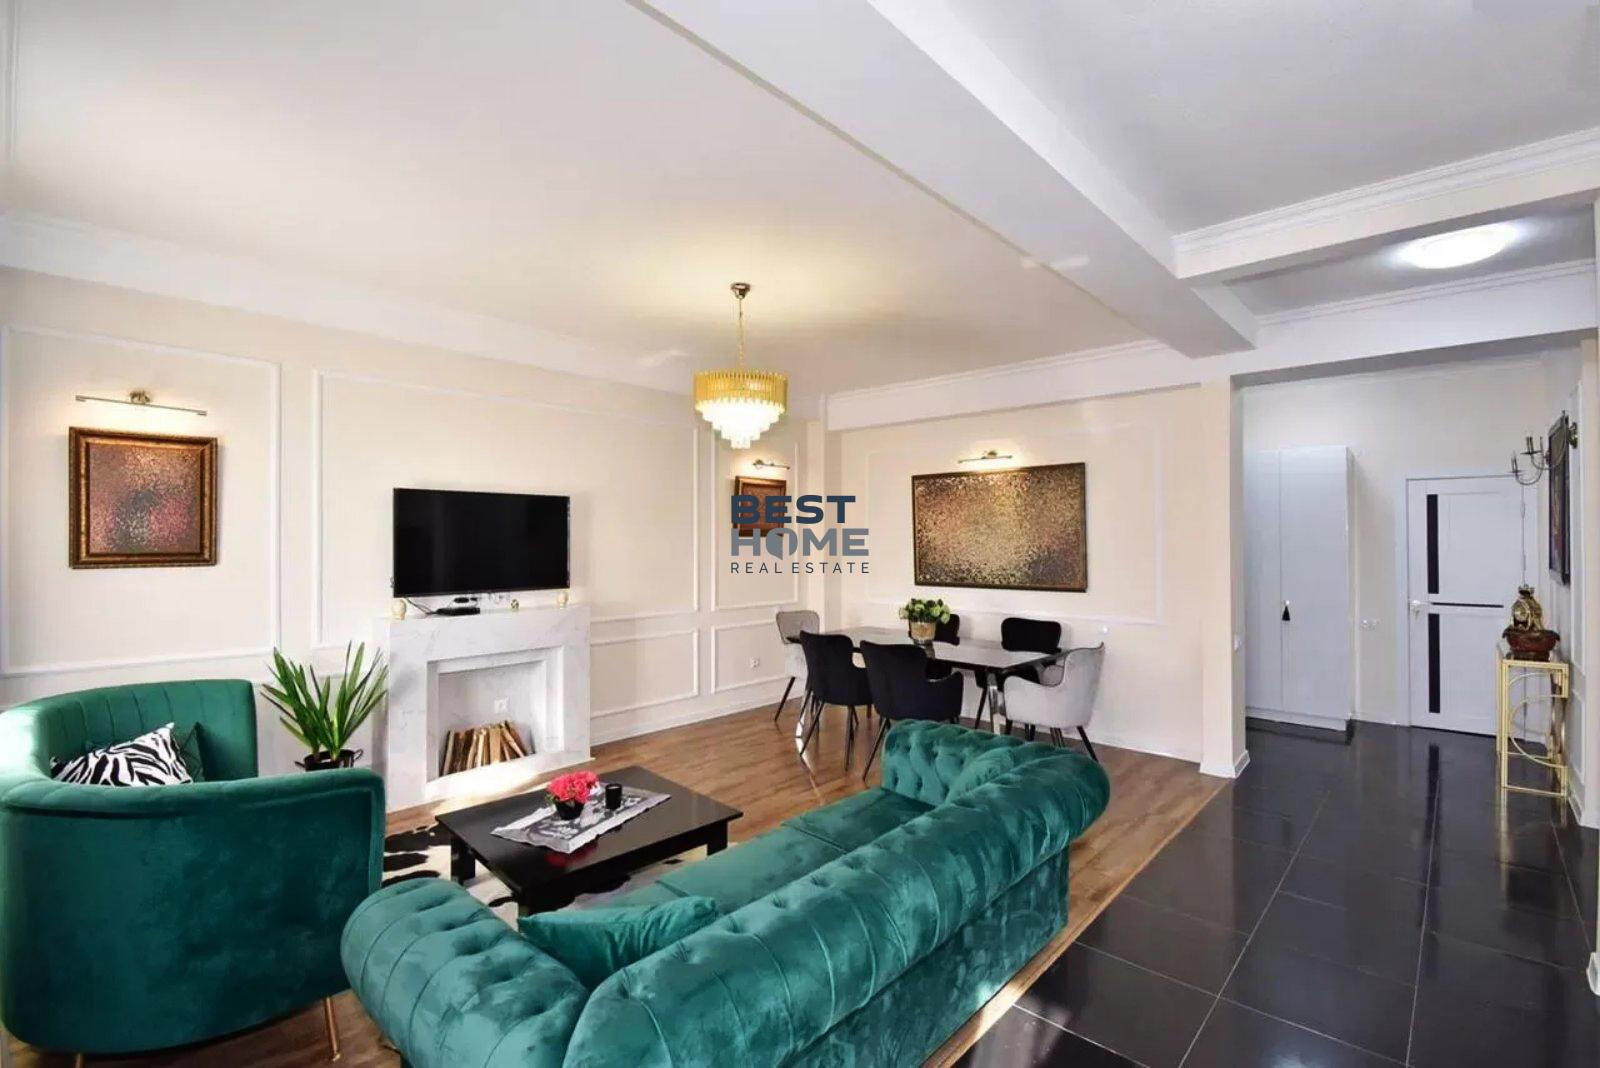 New-renovated two-bedroom apartment in Norq